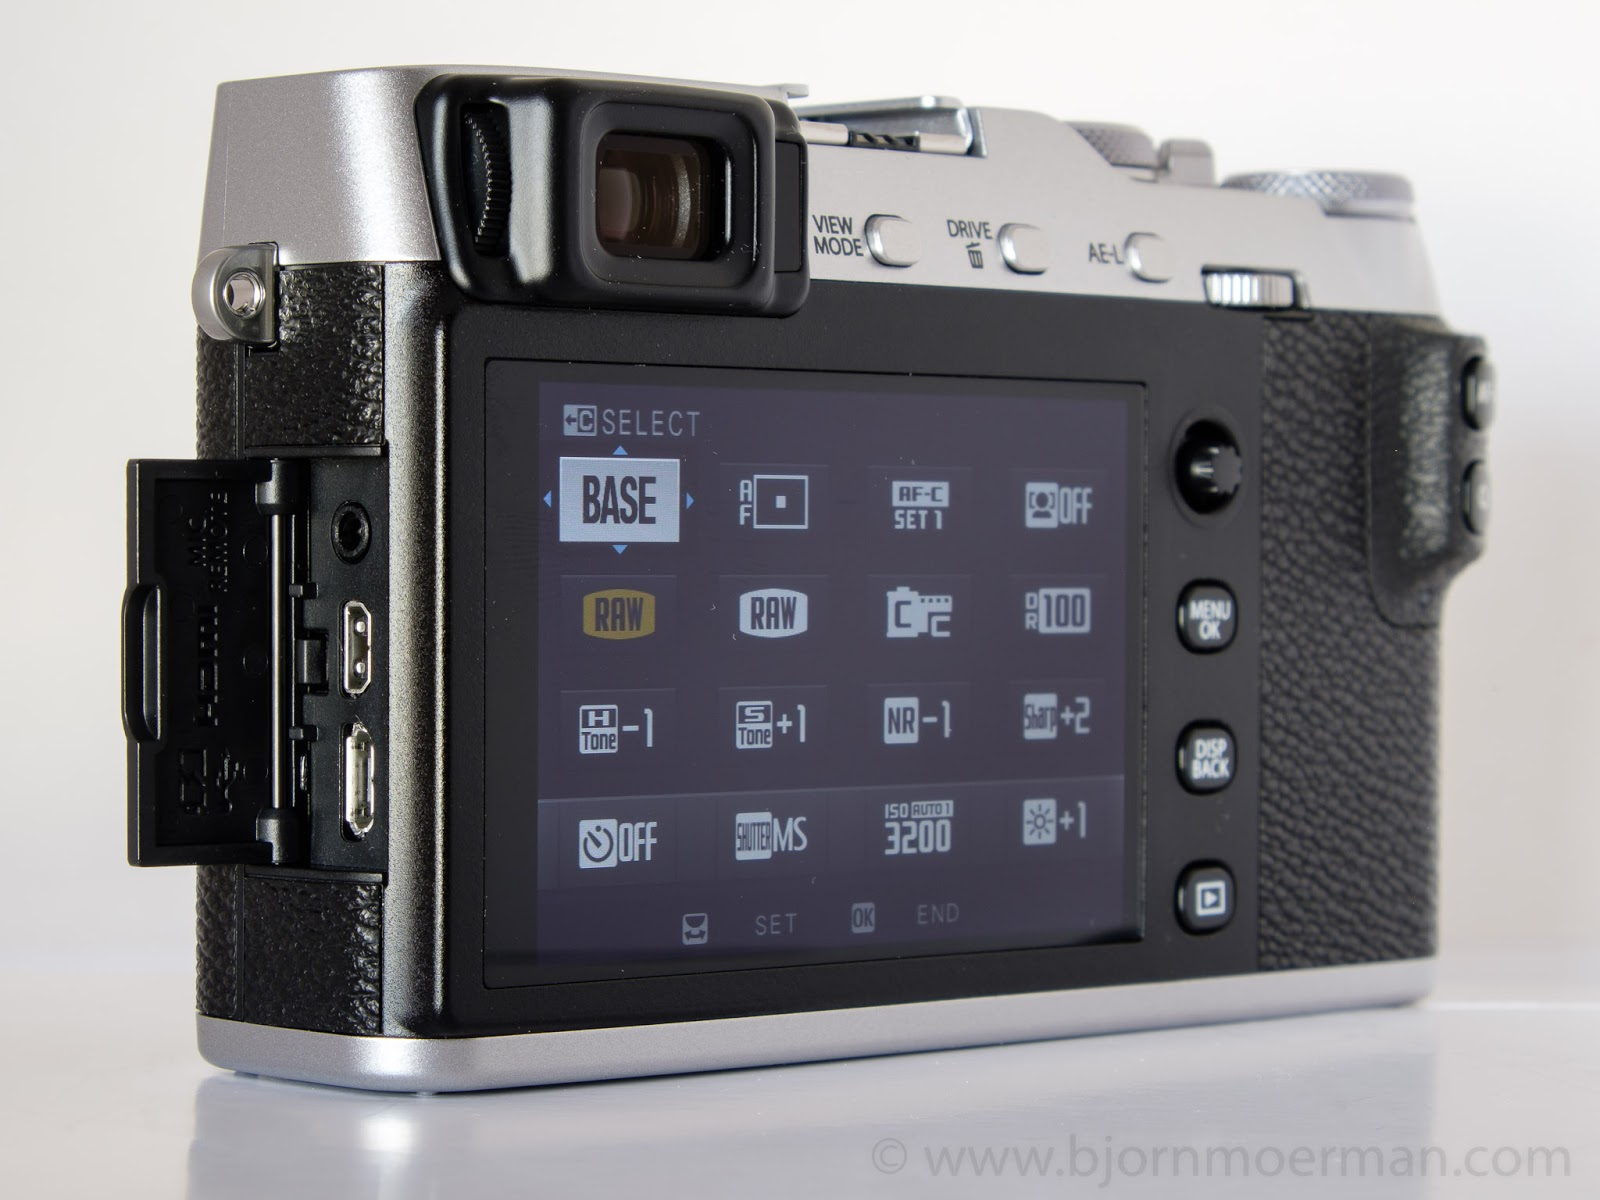 Bjrn Moerman Photography First Look Review Fujifilm X E3 Kit Xf 18 55mm Silver 35mm F2 On The Left Hand Side One Finds A 25mm Headset Jack Which Can Also Be Set Up And Used To Control Wired Remote Trigger Menu Setting